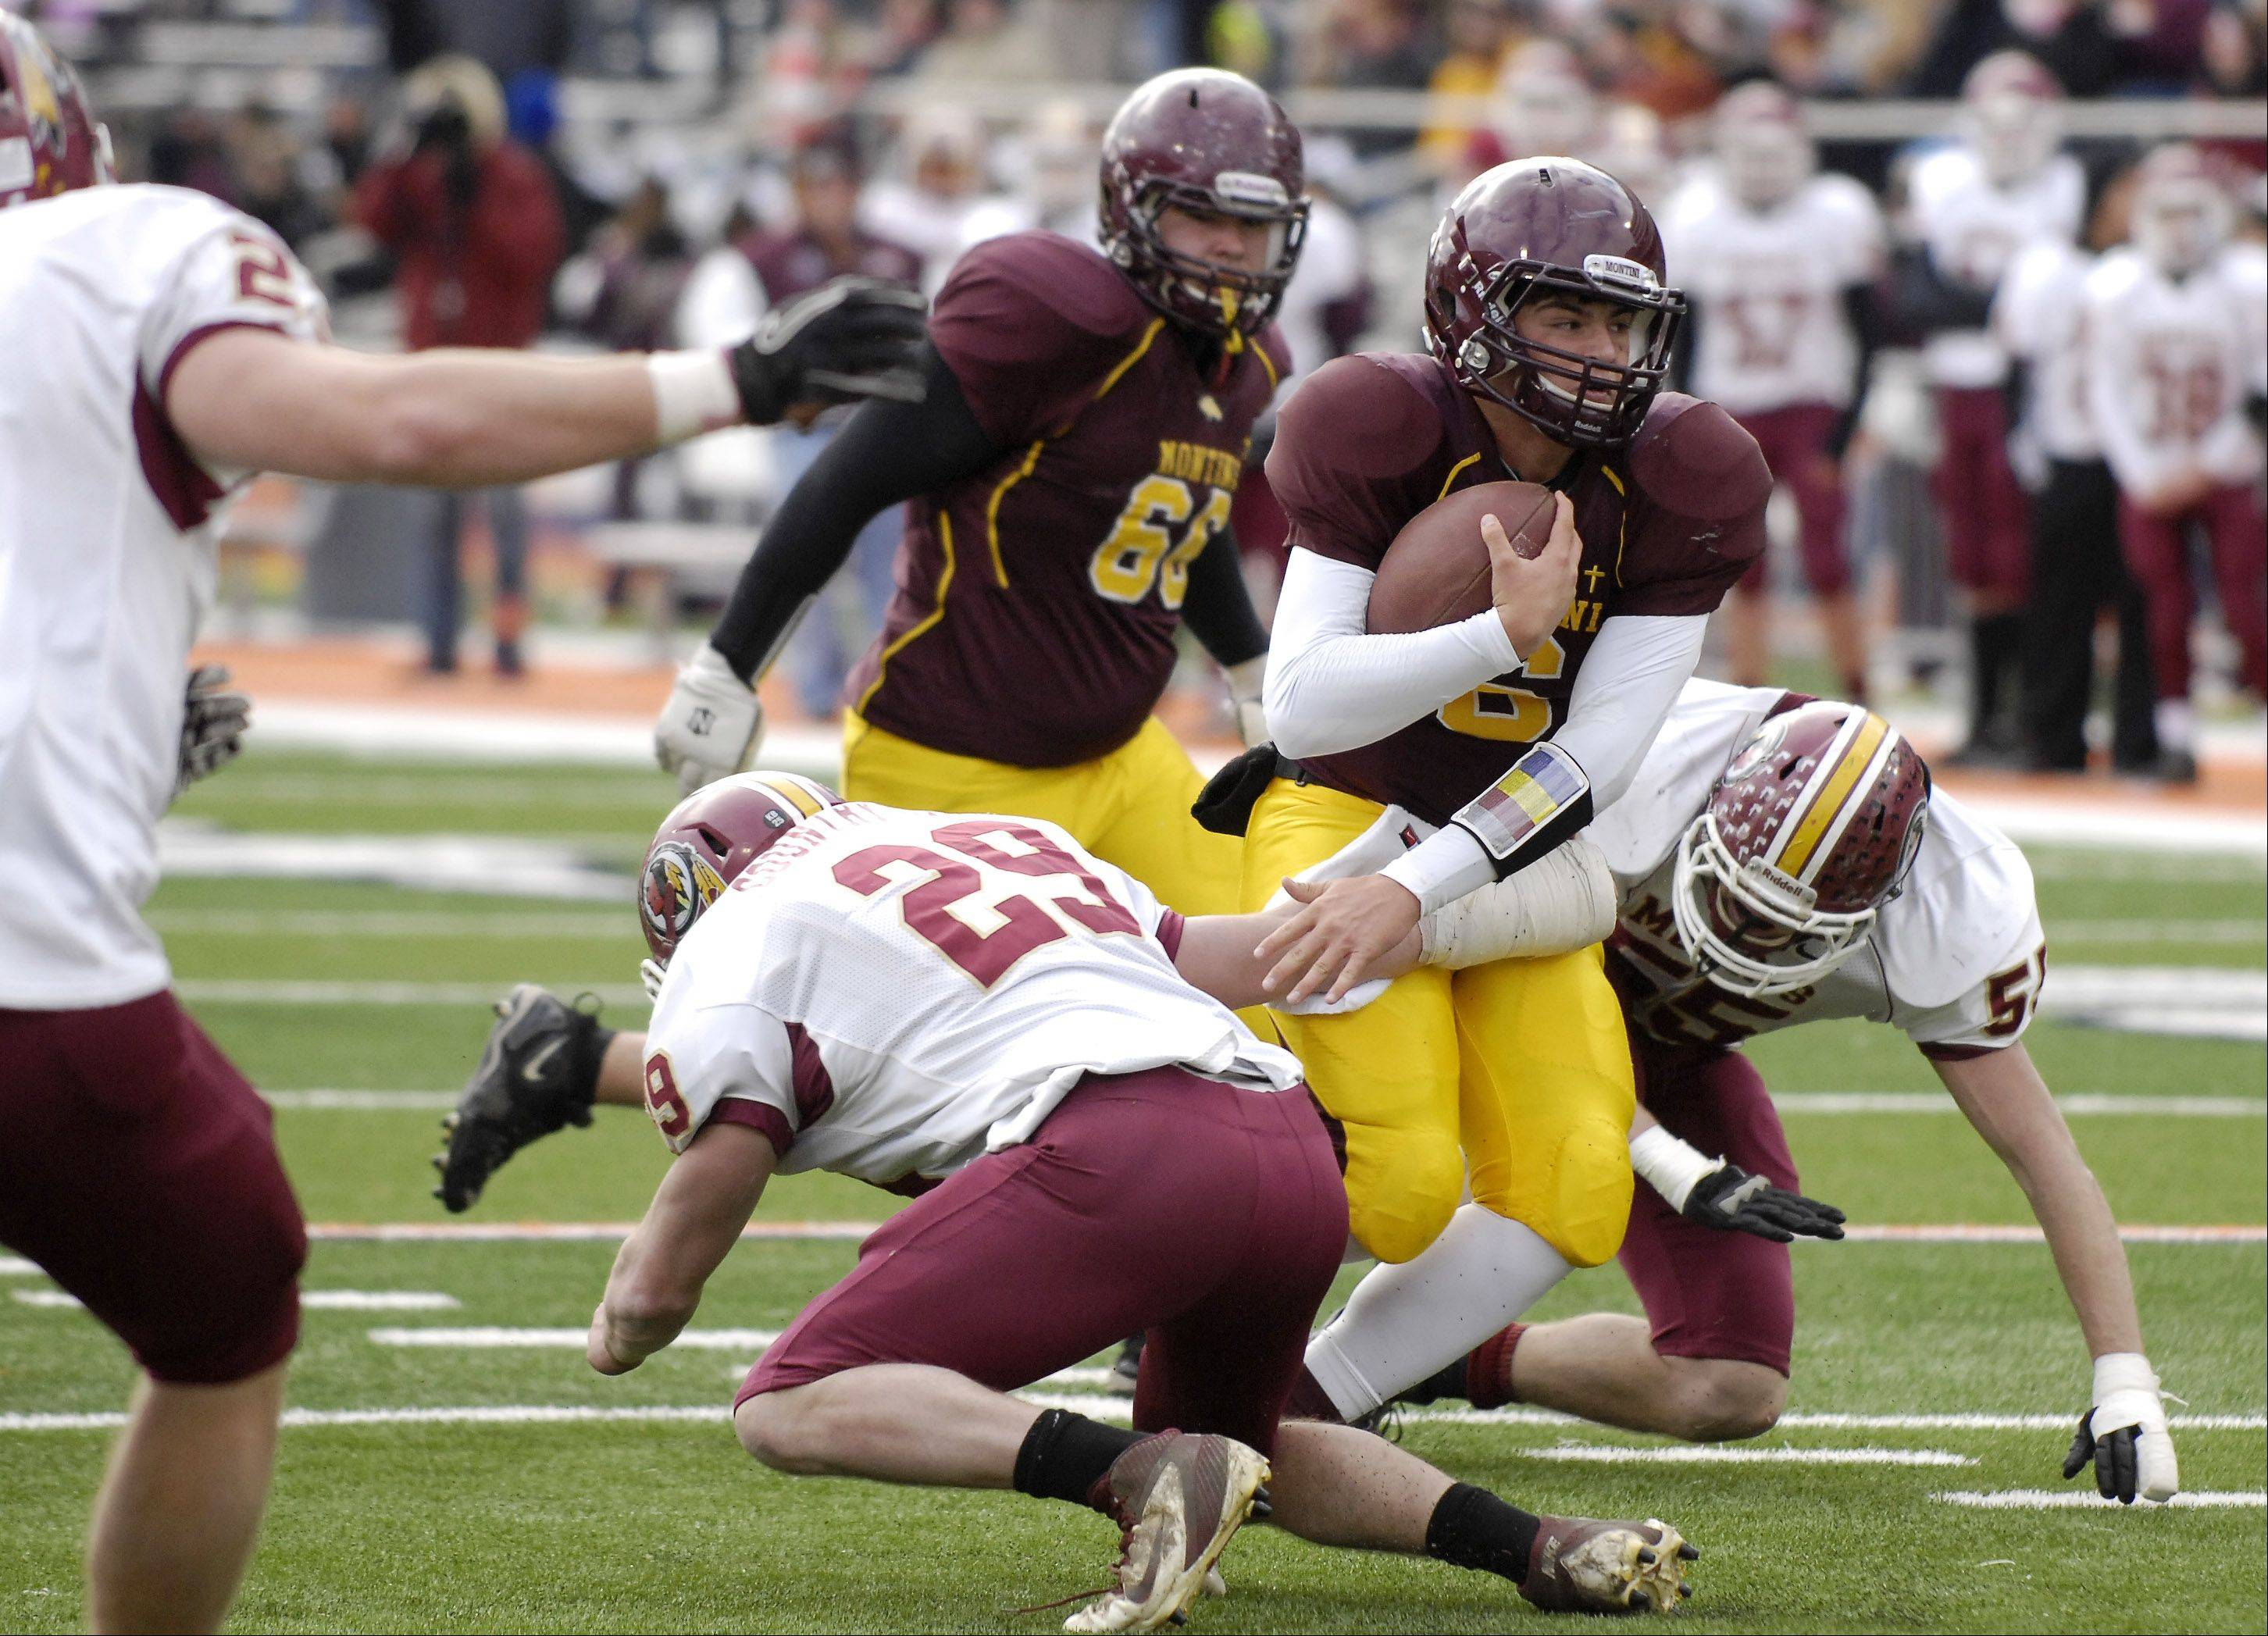 Montini quarterback Alexander Wills (6) finds a lane up the middle against Morris during Saturday's Class 5A state title game at Memorial Stadium in Champaign.